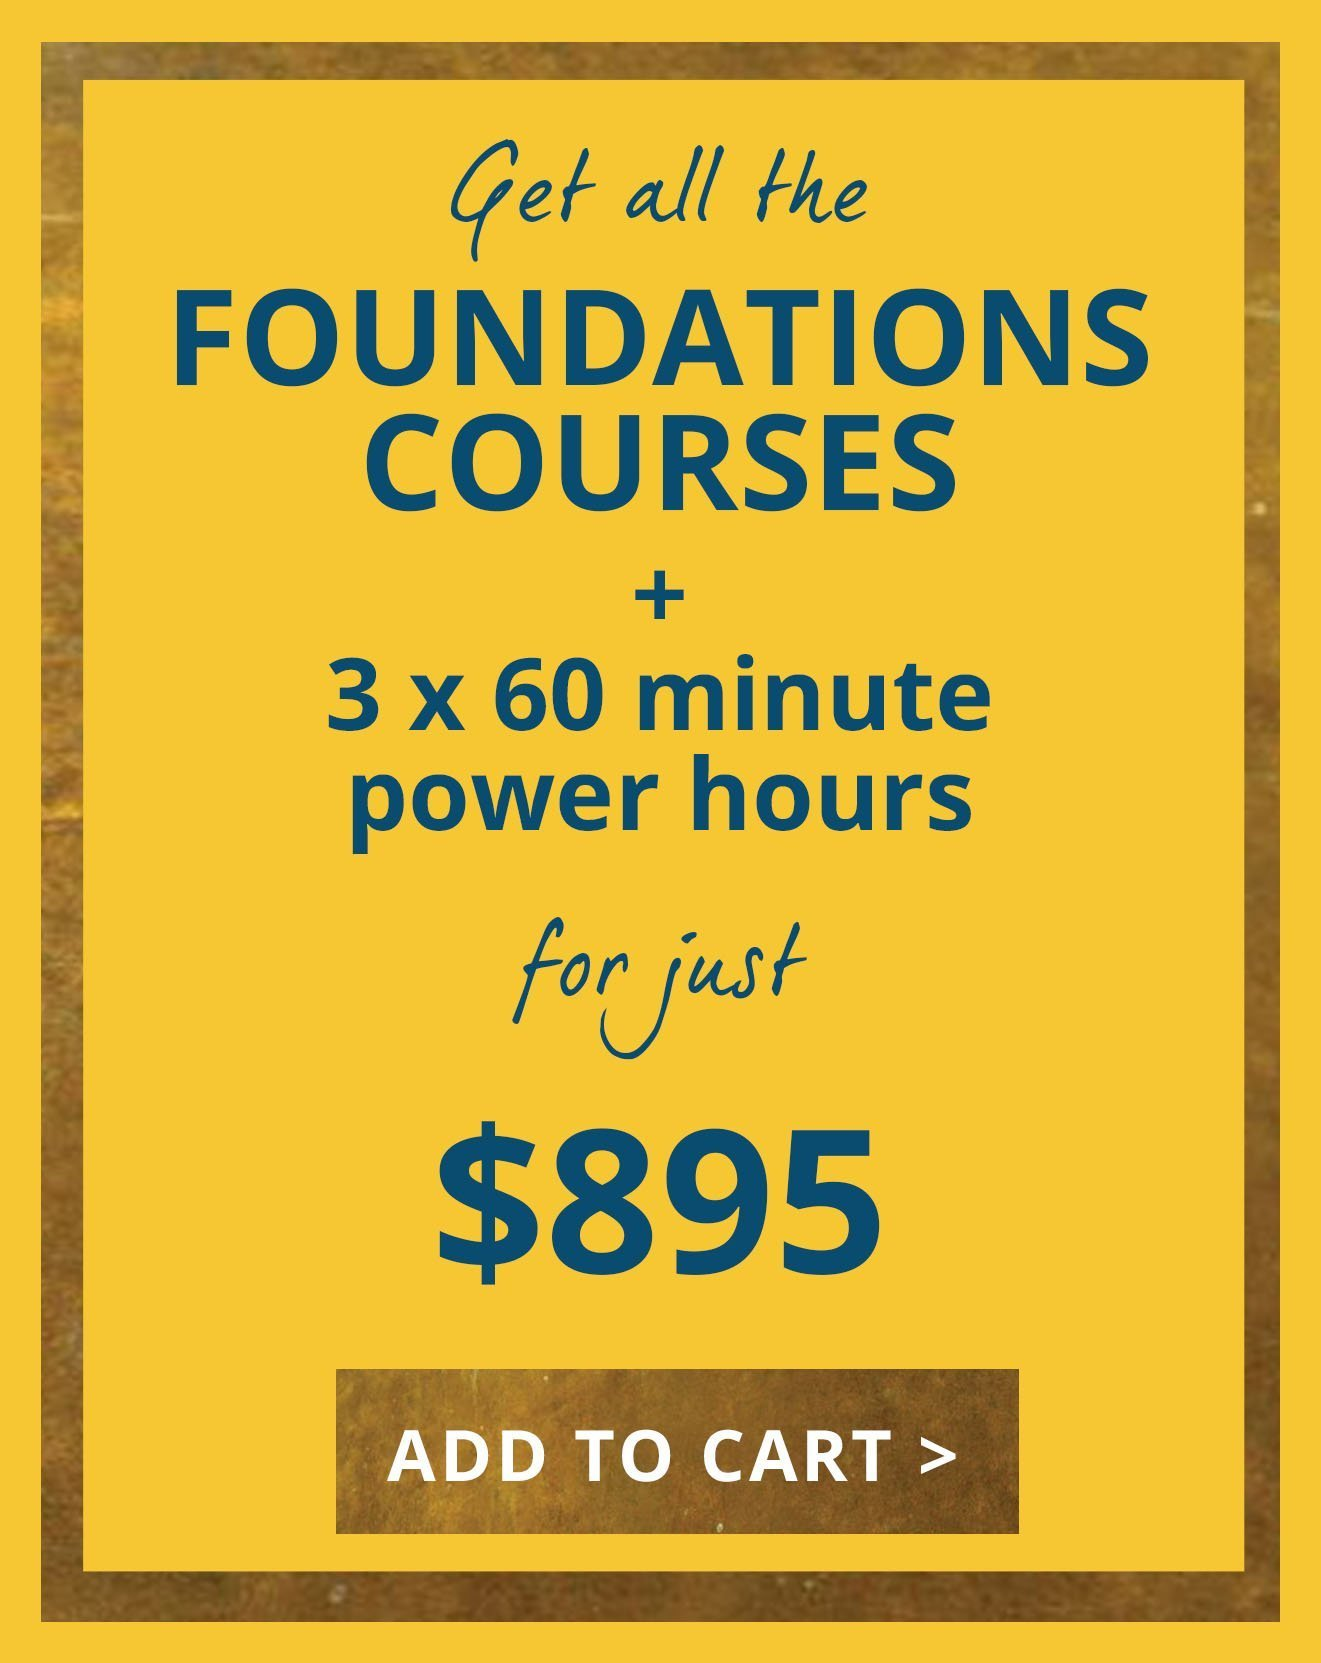 Foundations Courses plus power hours